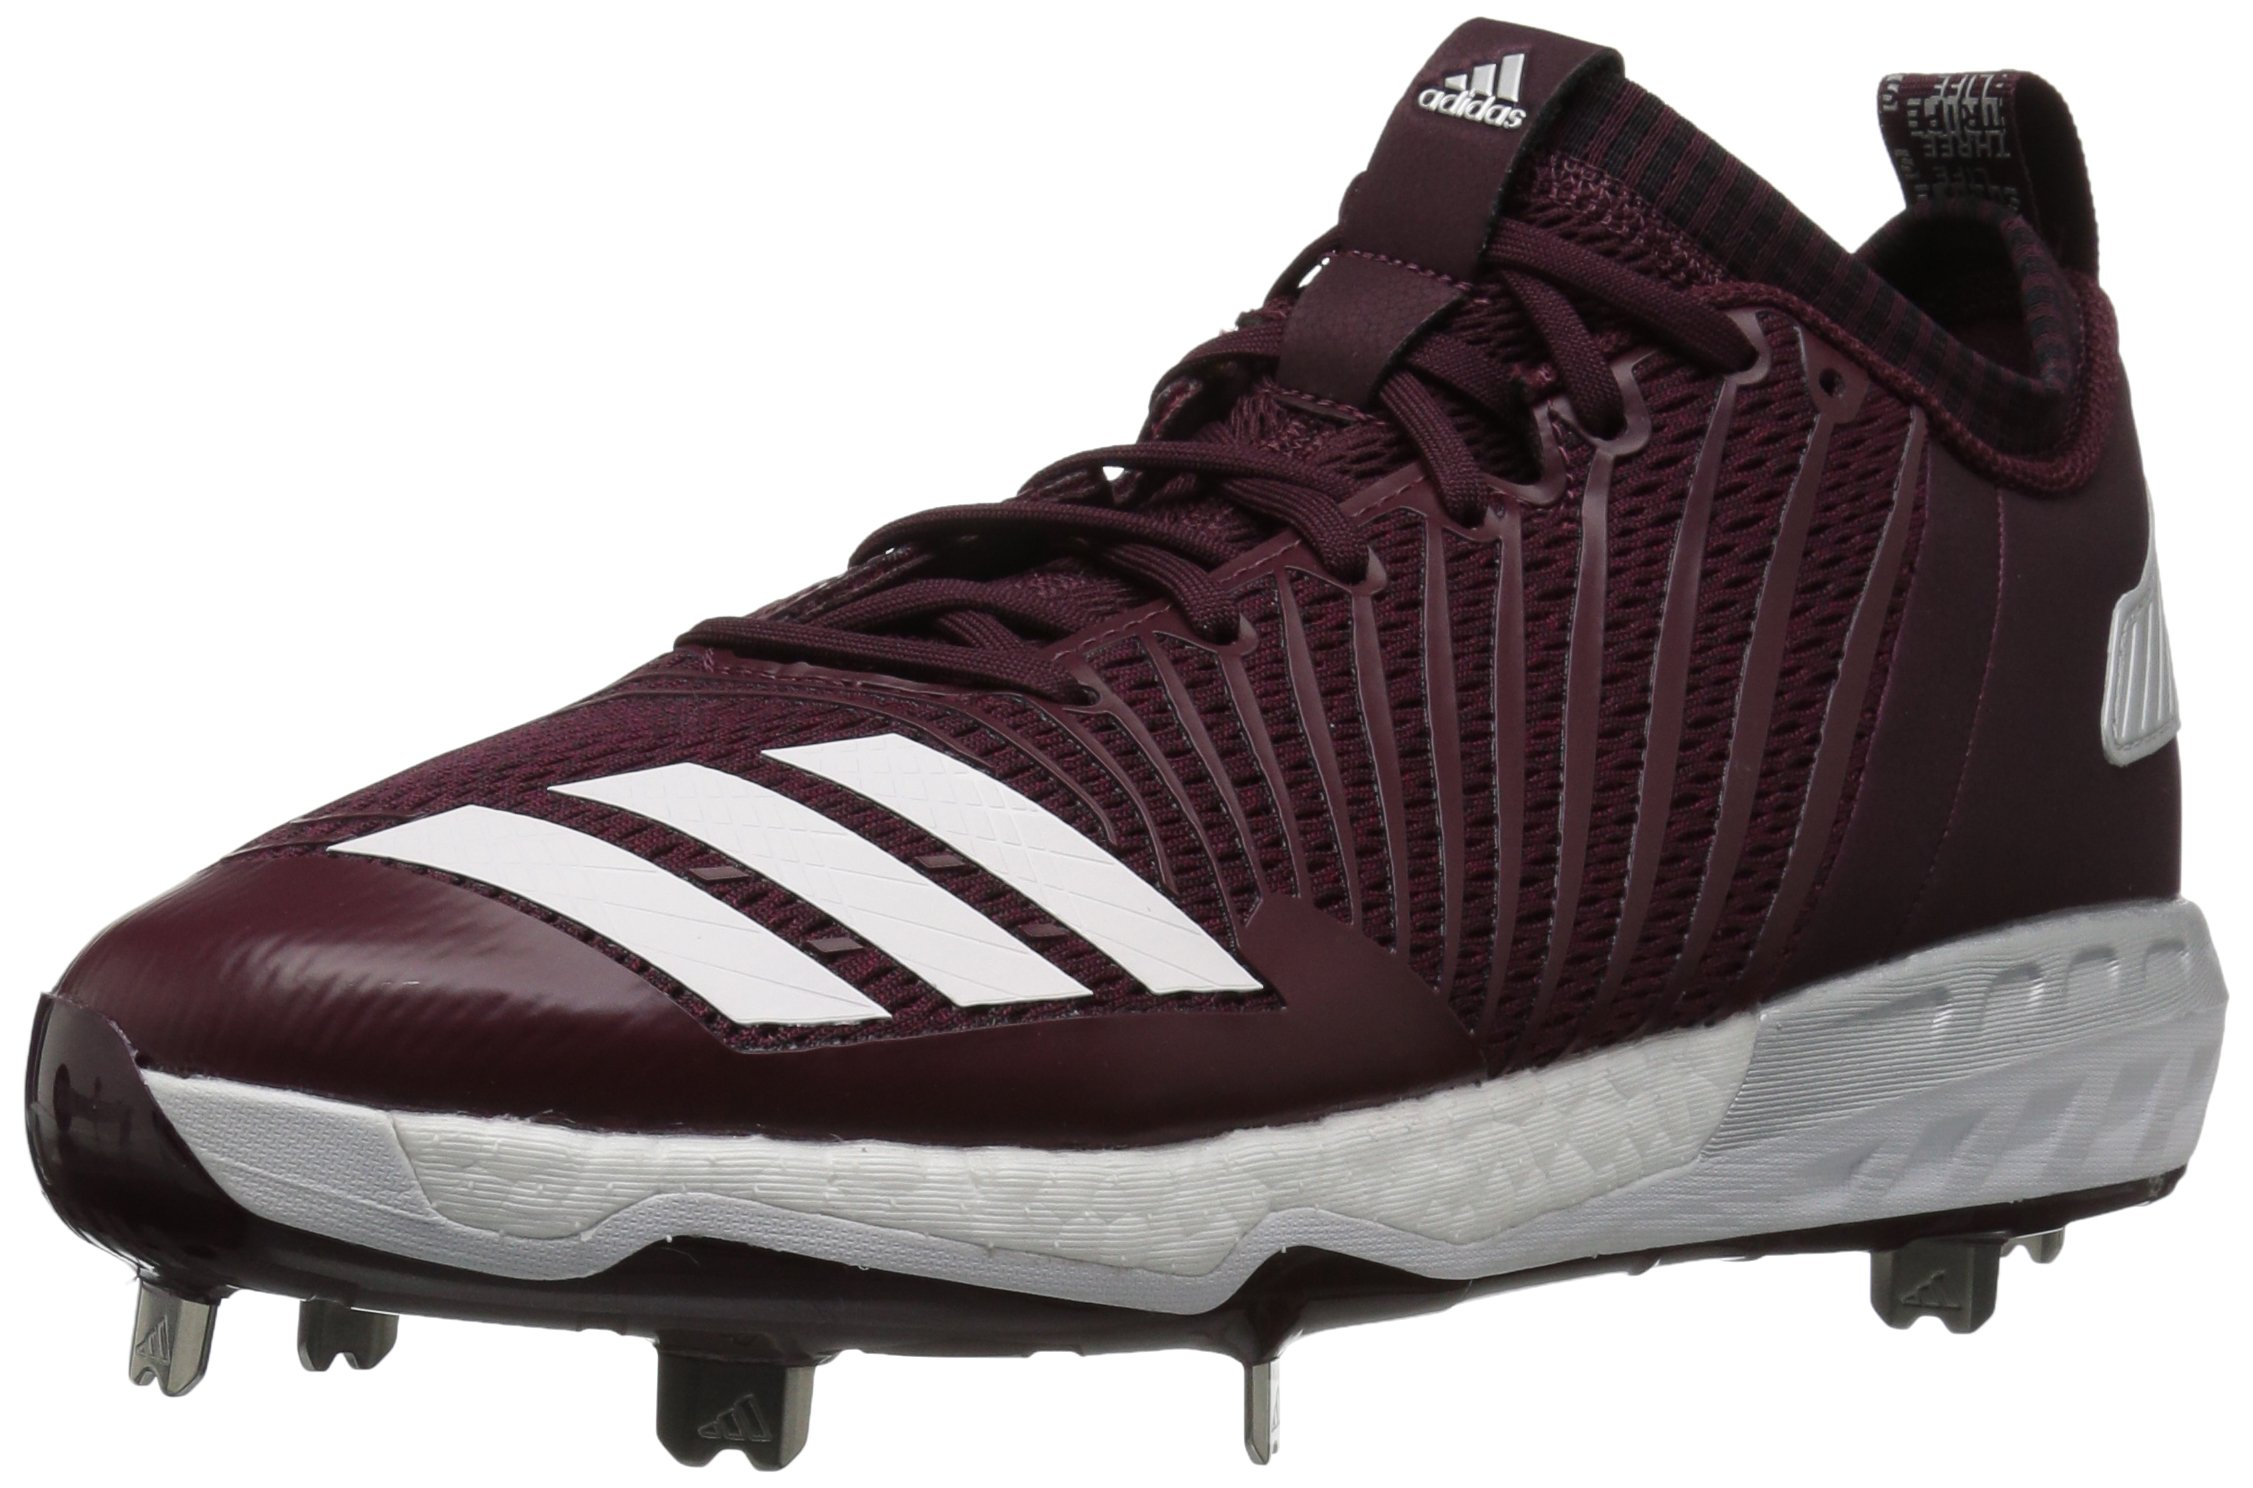 adidas Men's Freak X Carbon Mid Baseball Shoe, Maroon/White/Metallic Silver, 7.5 Medium US by adidas (Image #1)